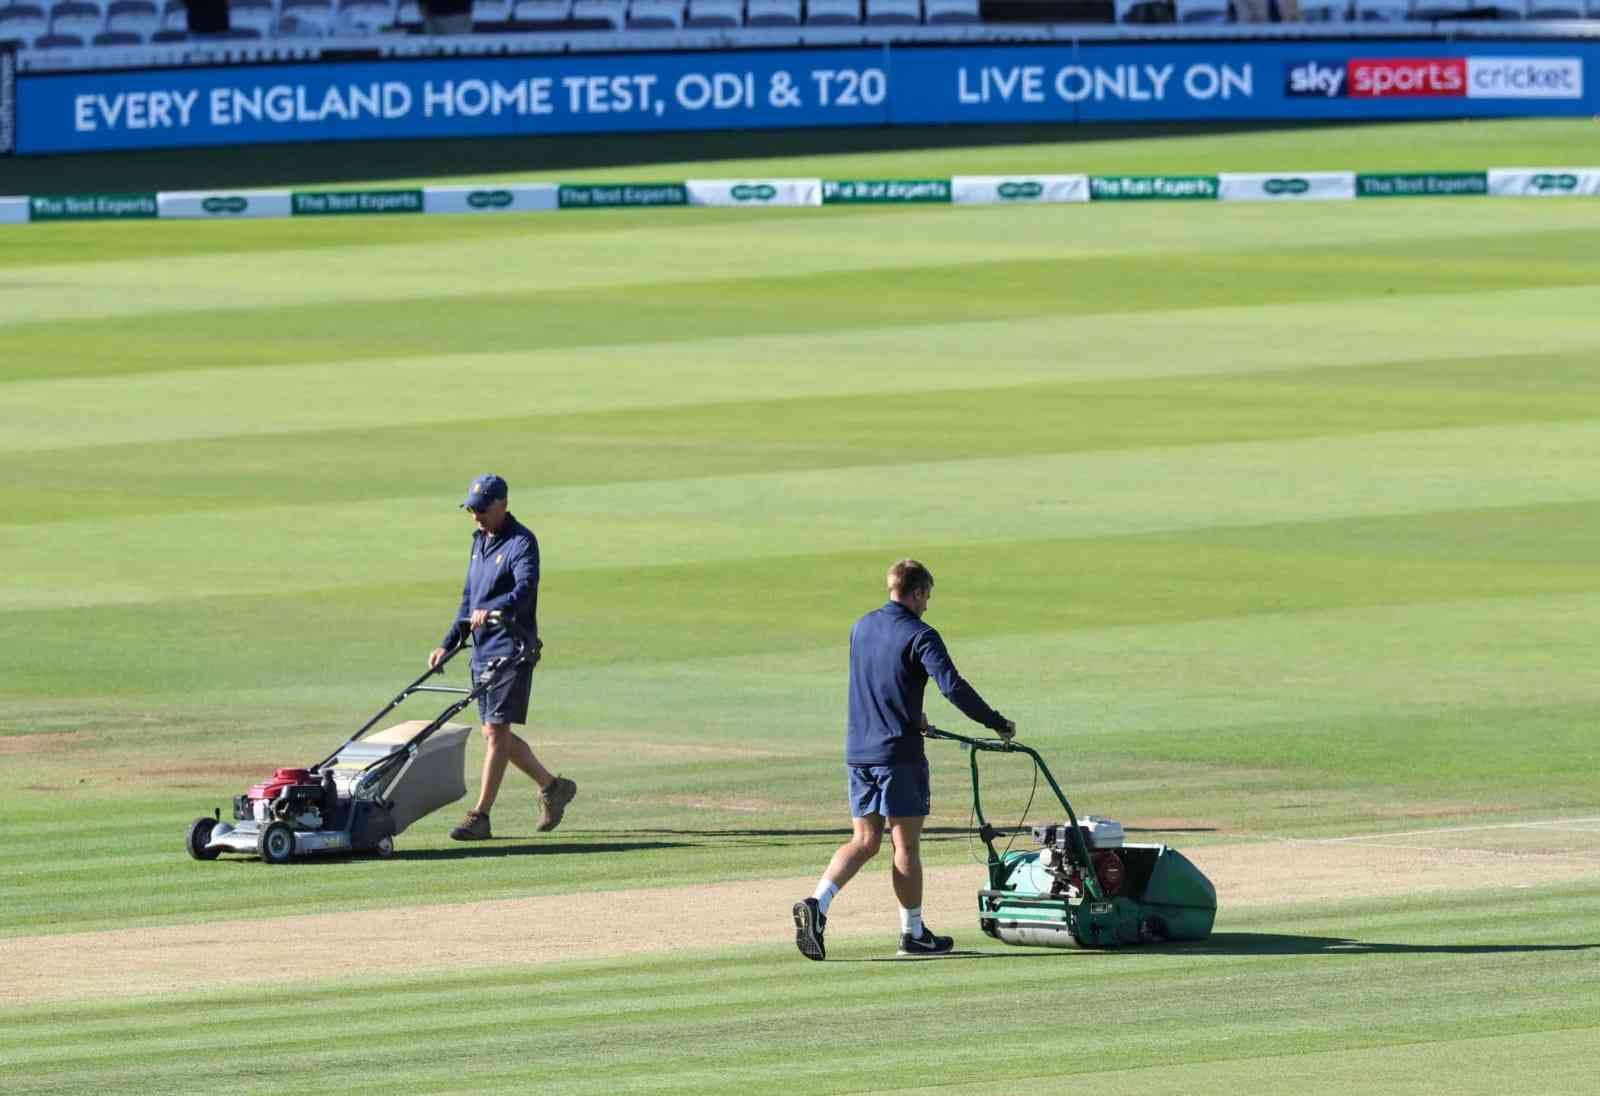 Pic courtesy: Lord's Cricket Ground.